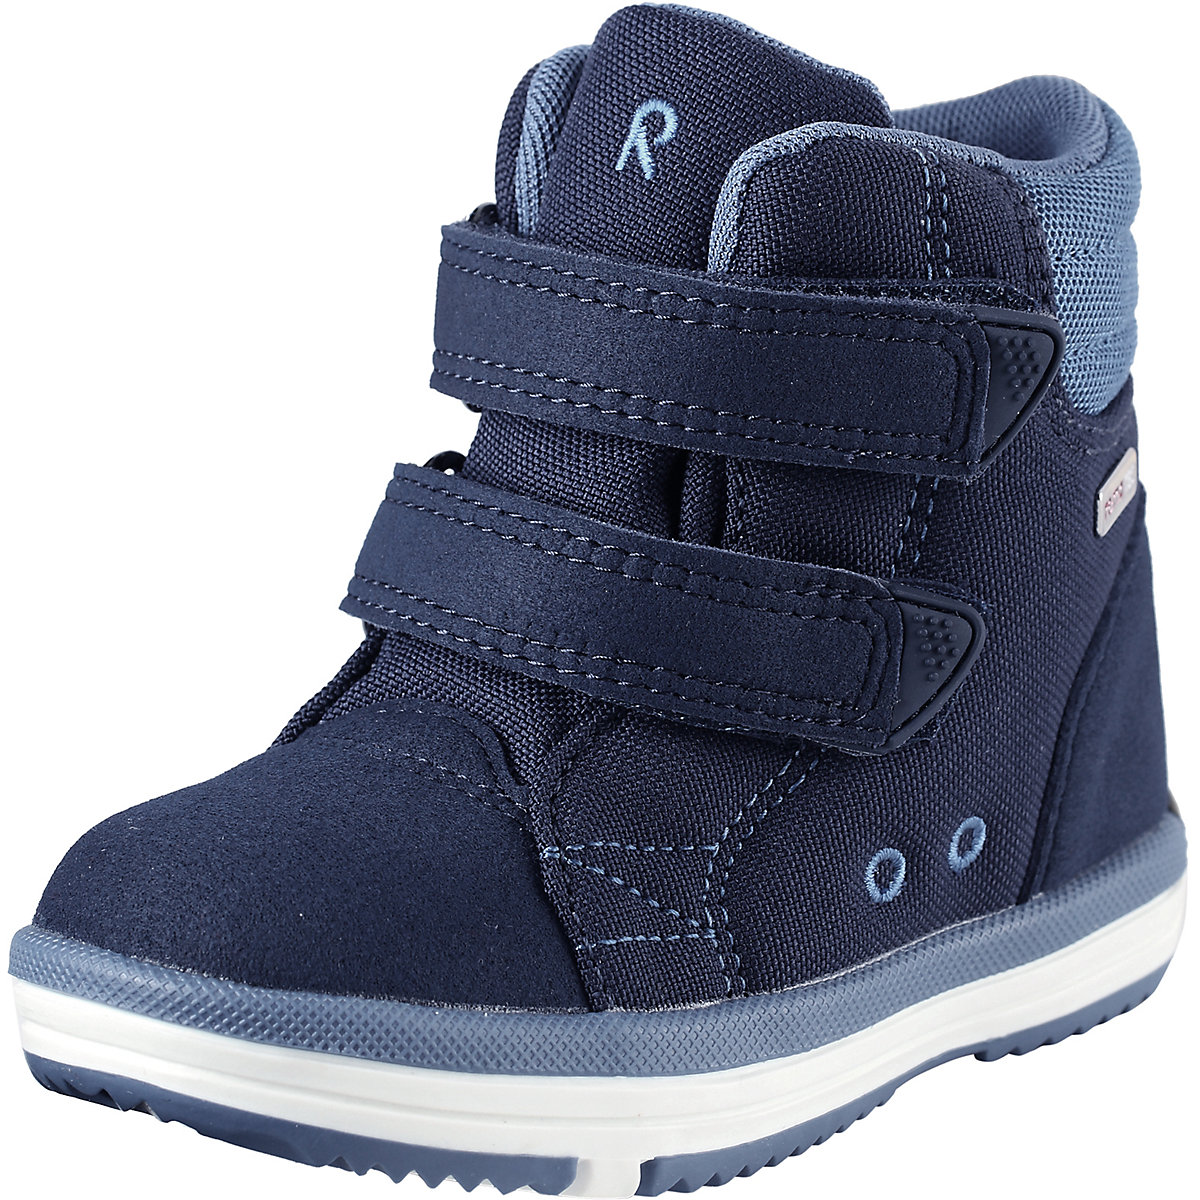 REIMA Boots 8624761 For Boys Spring Autumn Boy  Children Shoes